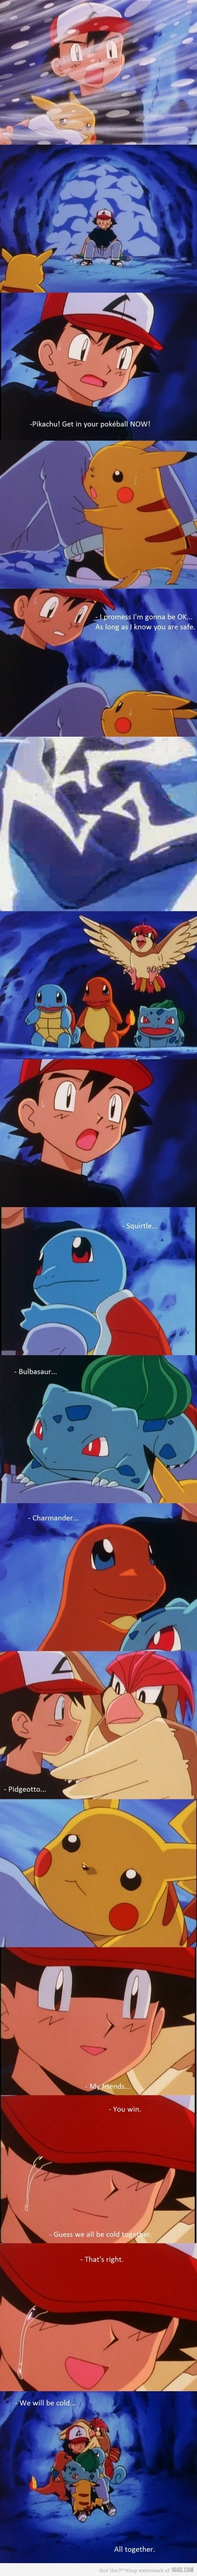 I remember this episode. I remember crying. I remember all the other times this show made me cry. I miss Pokemon.